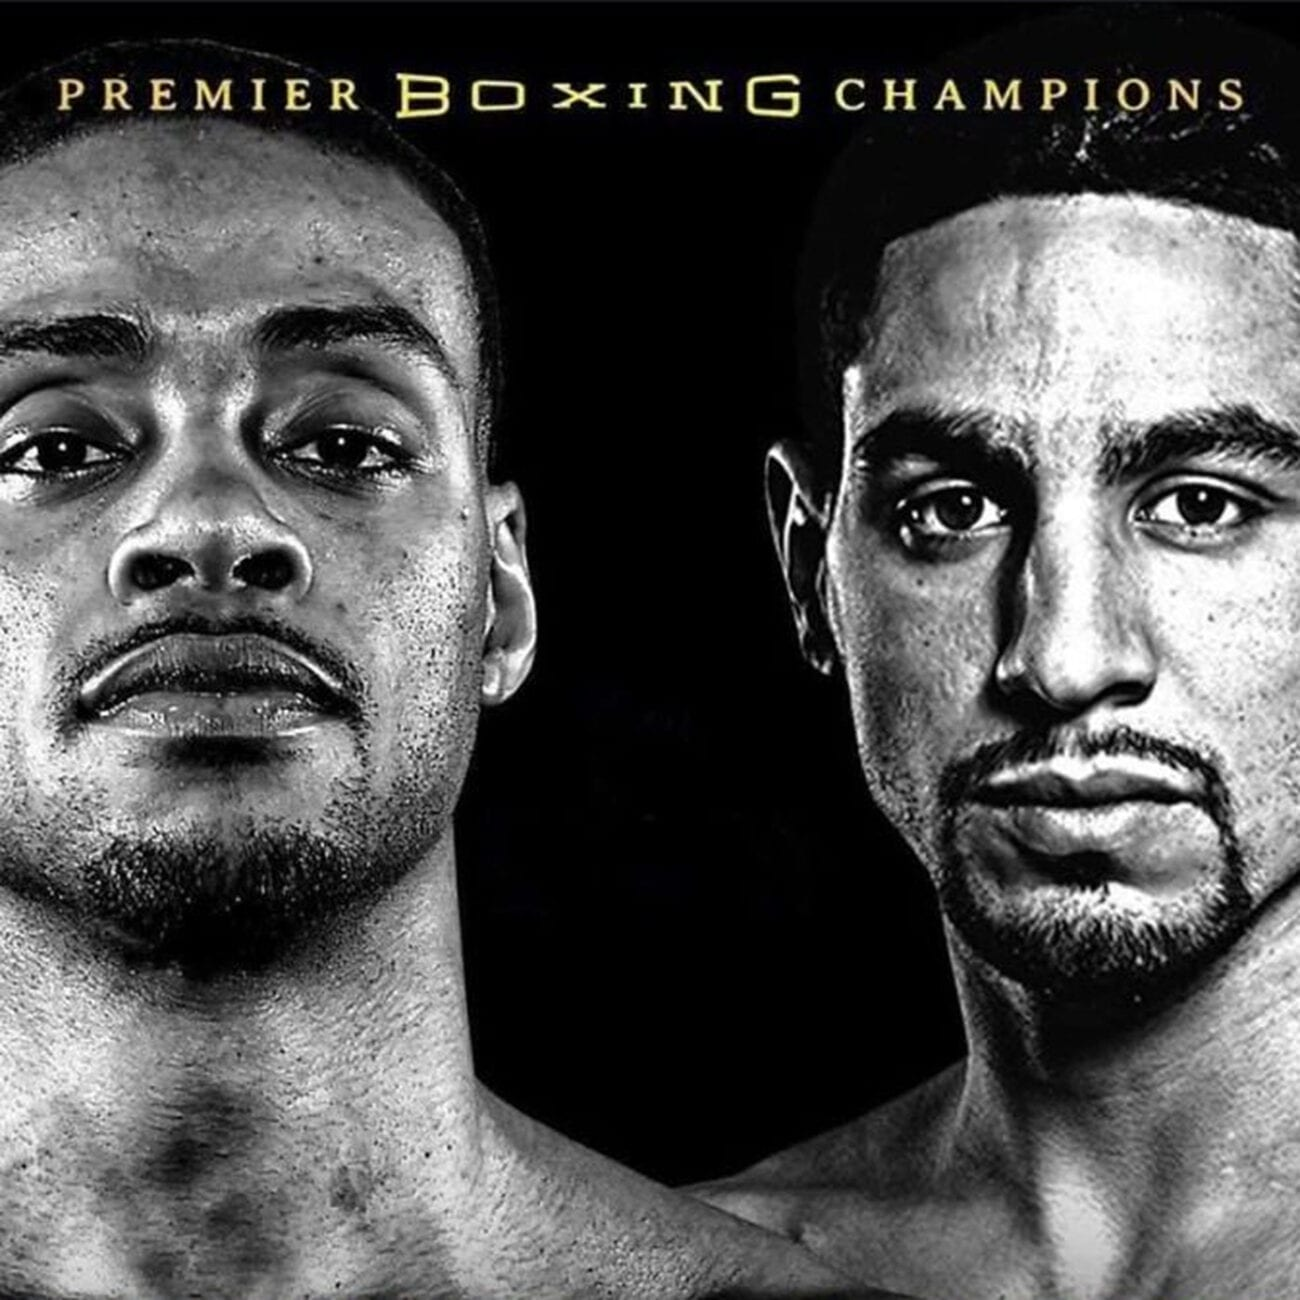 Check out these live streams of Errol Spence vs Danny Garcia.